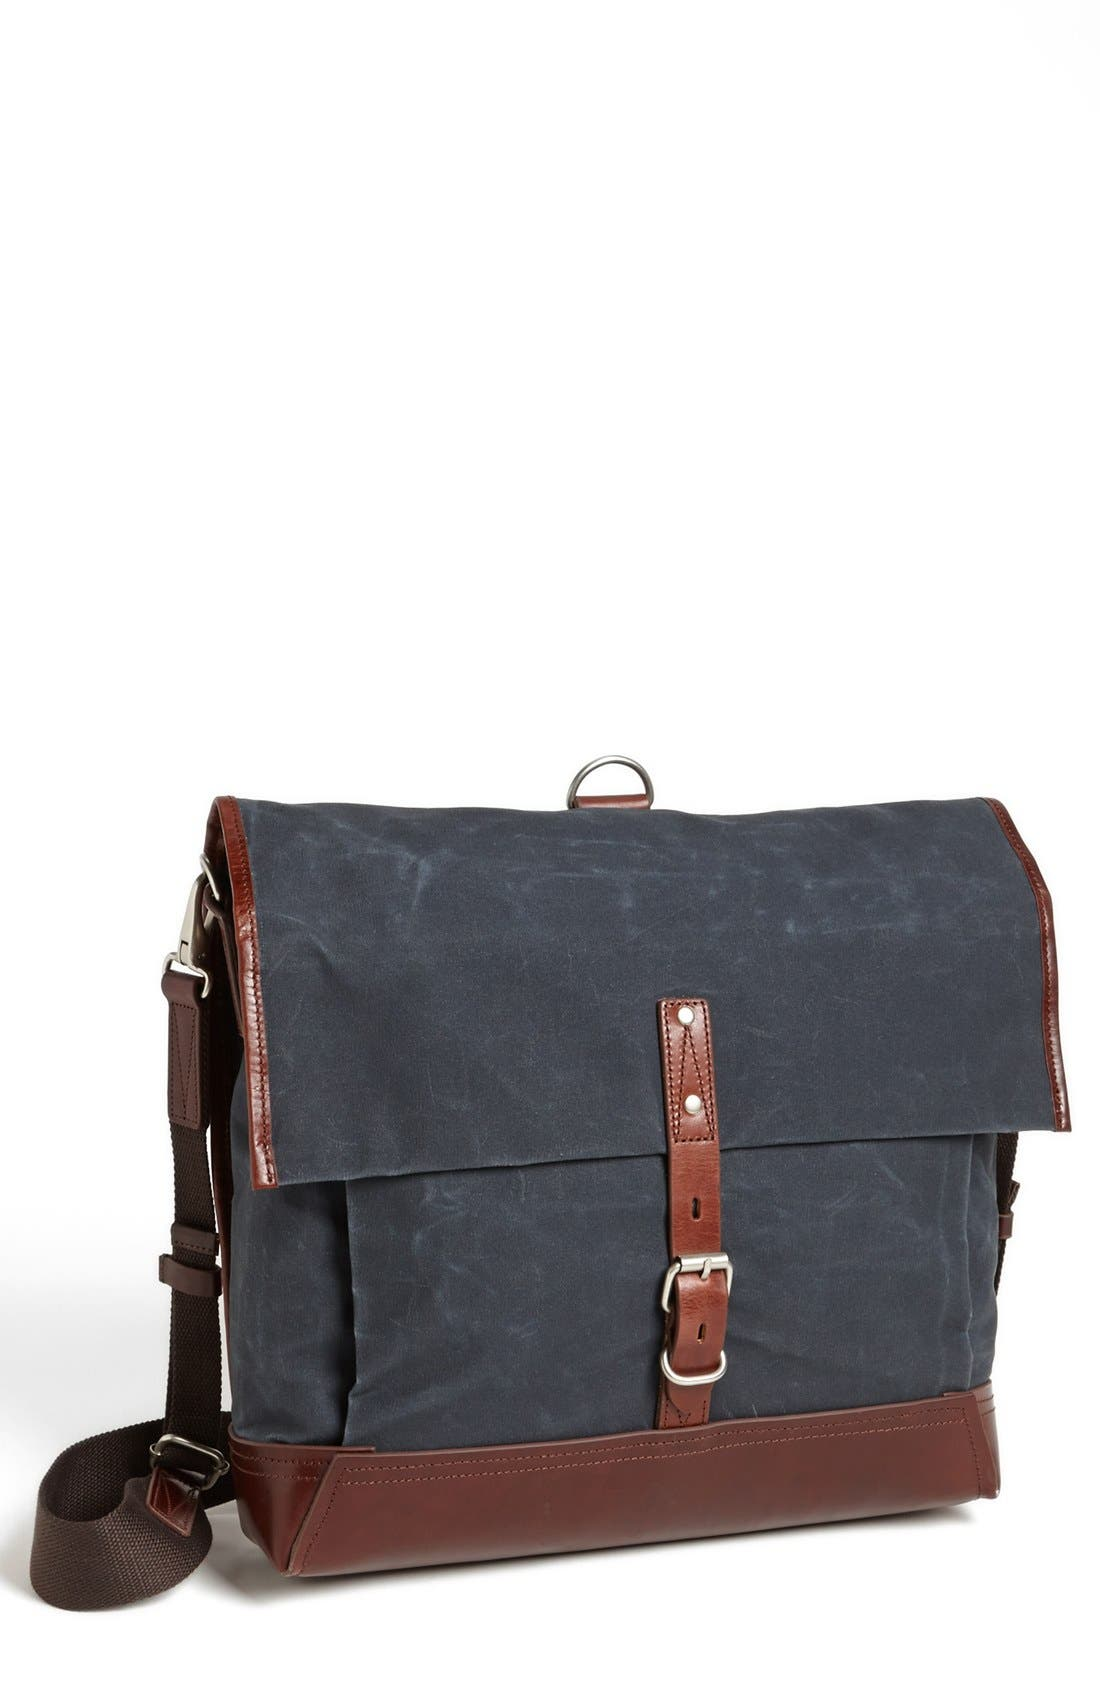 Main Image - Property Of... 'Alfred' Utility Bag